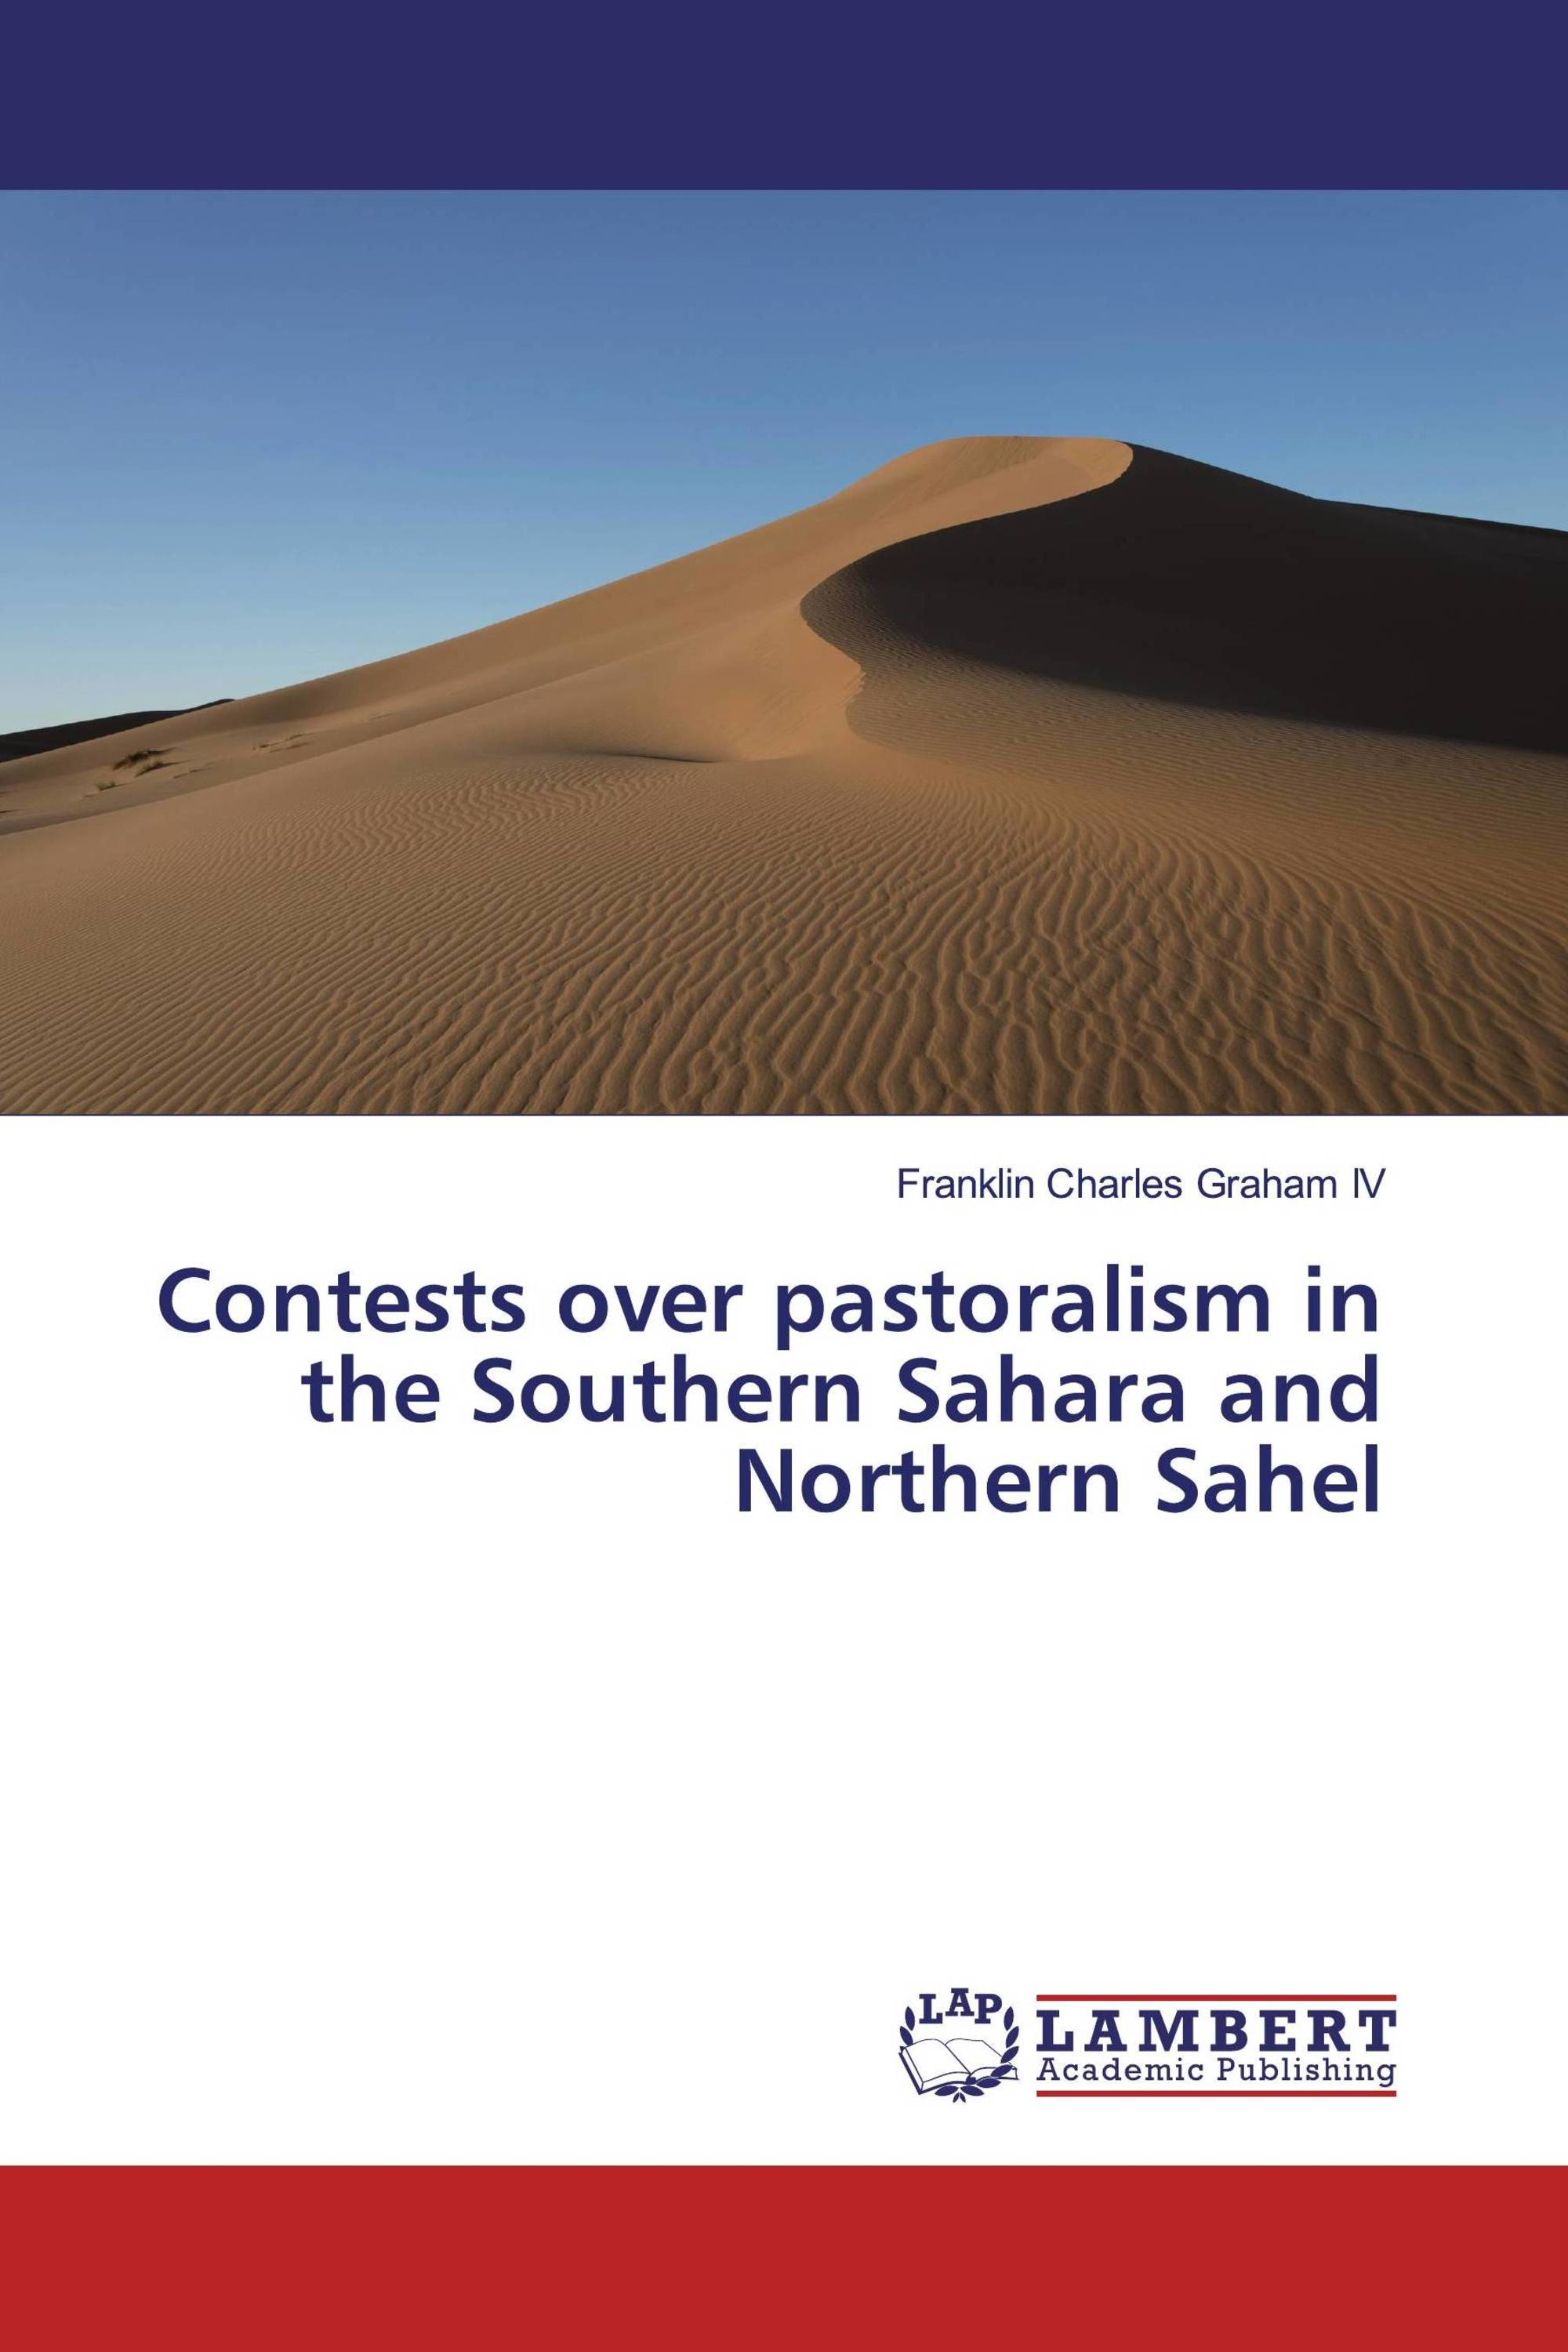 Contests over pastoralism in the Southern Sahara and Northern Sahel